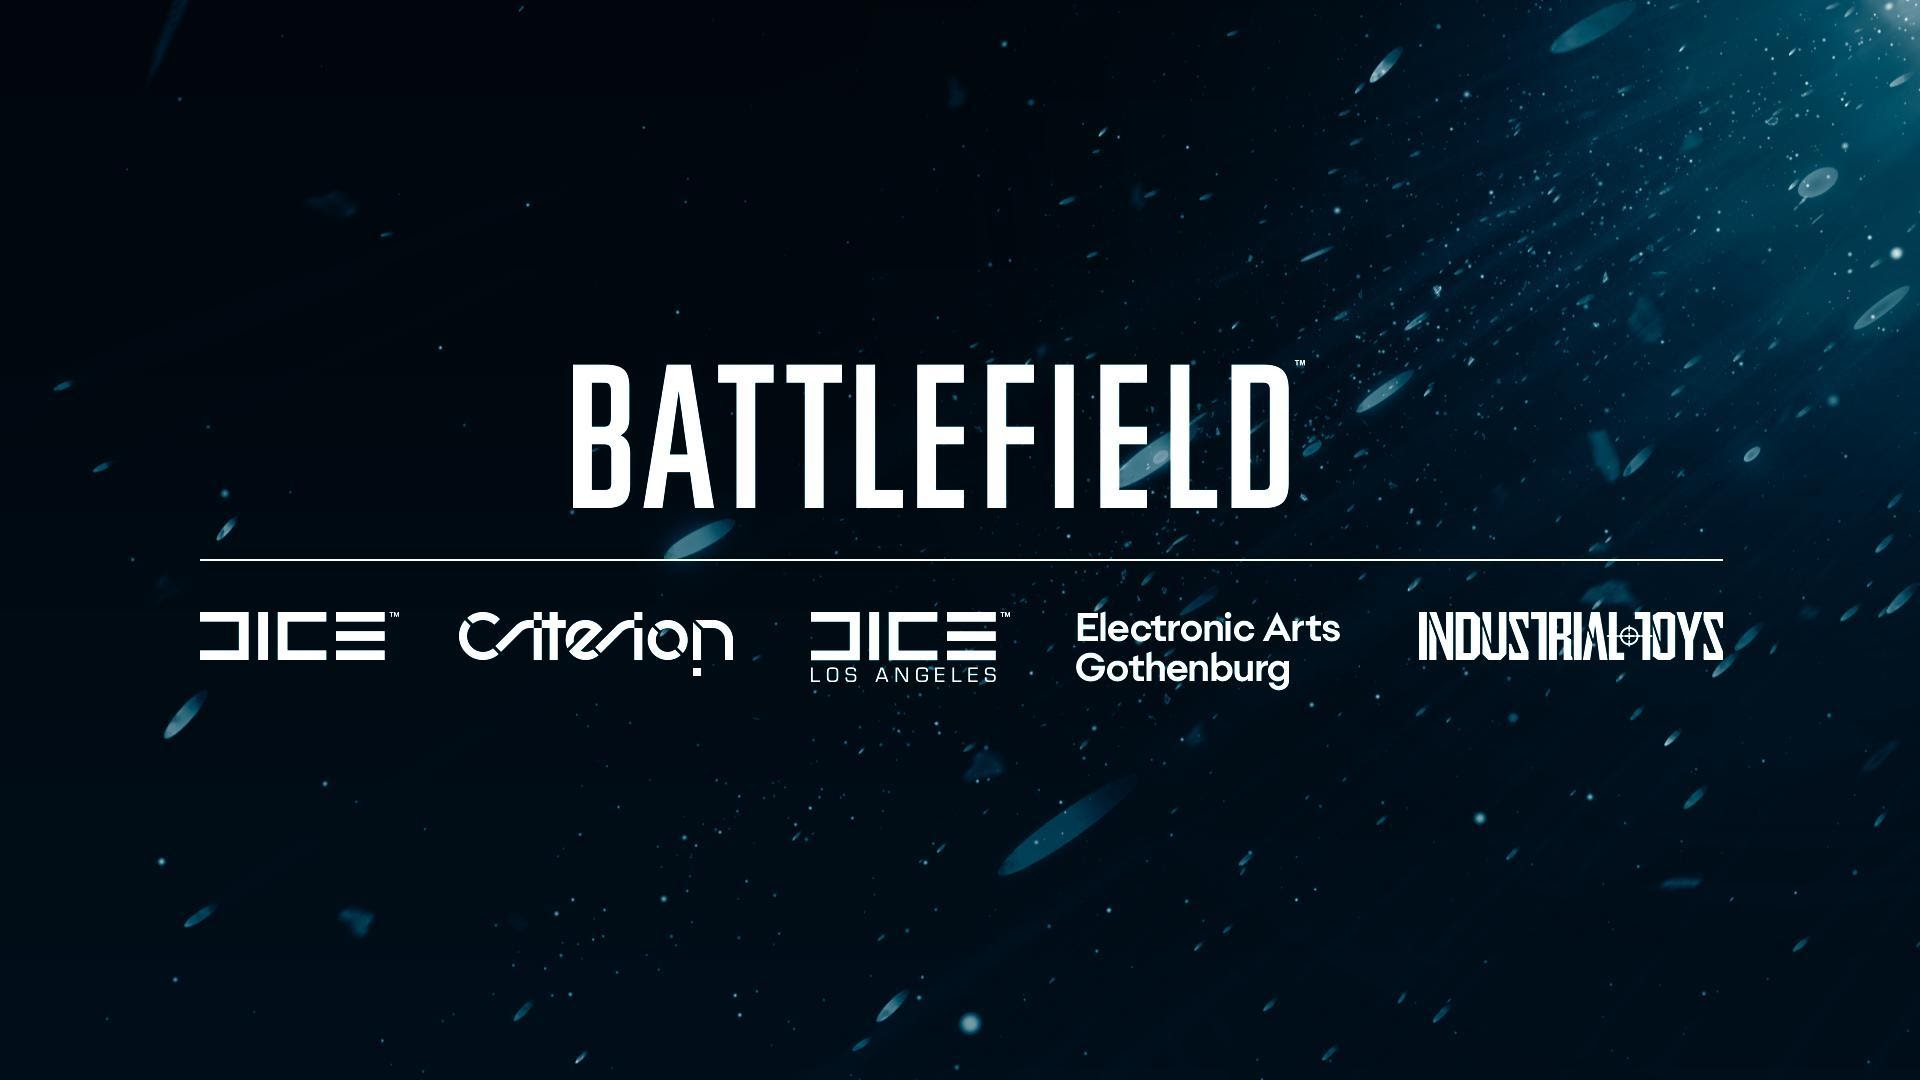 'Battlefield' is finally coming to mobile as a standalone game